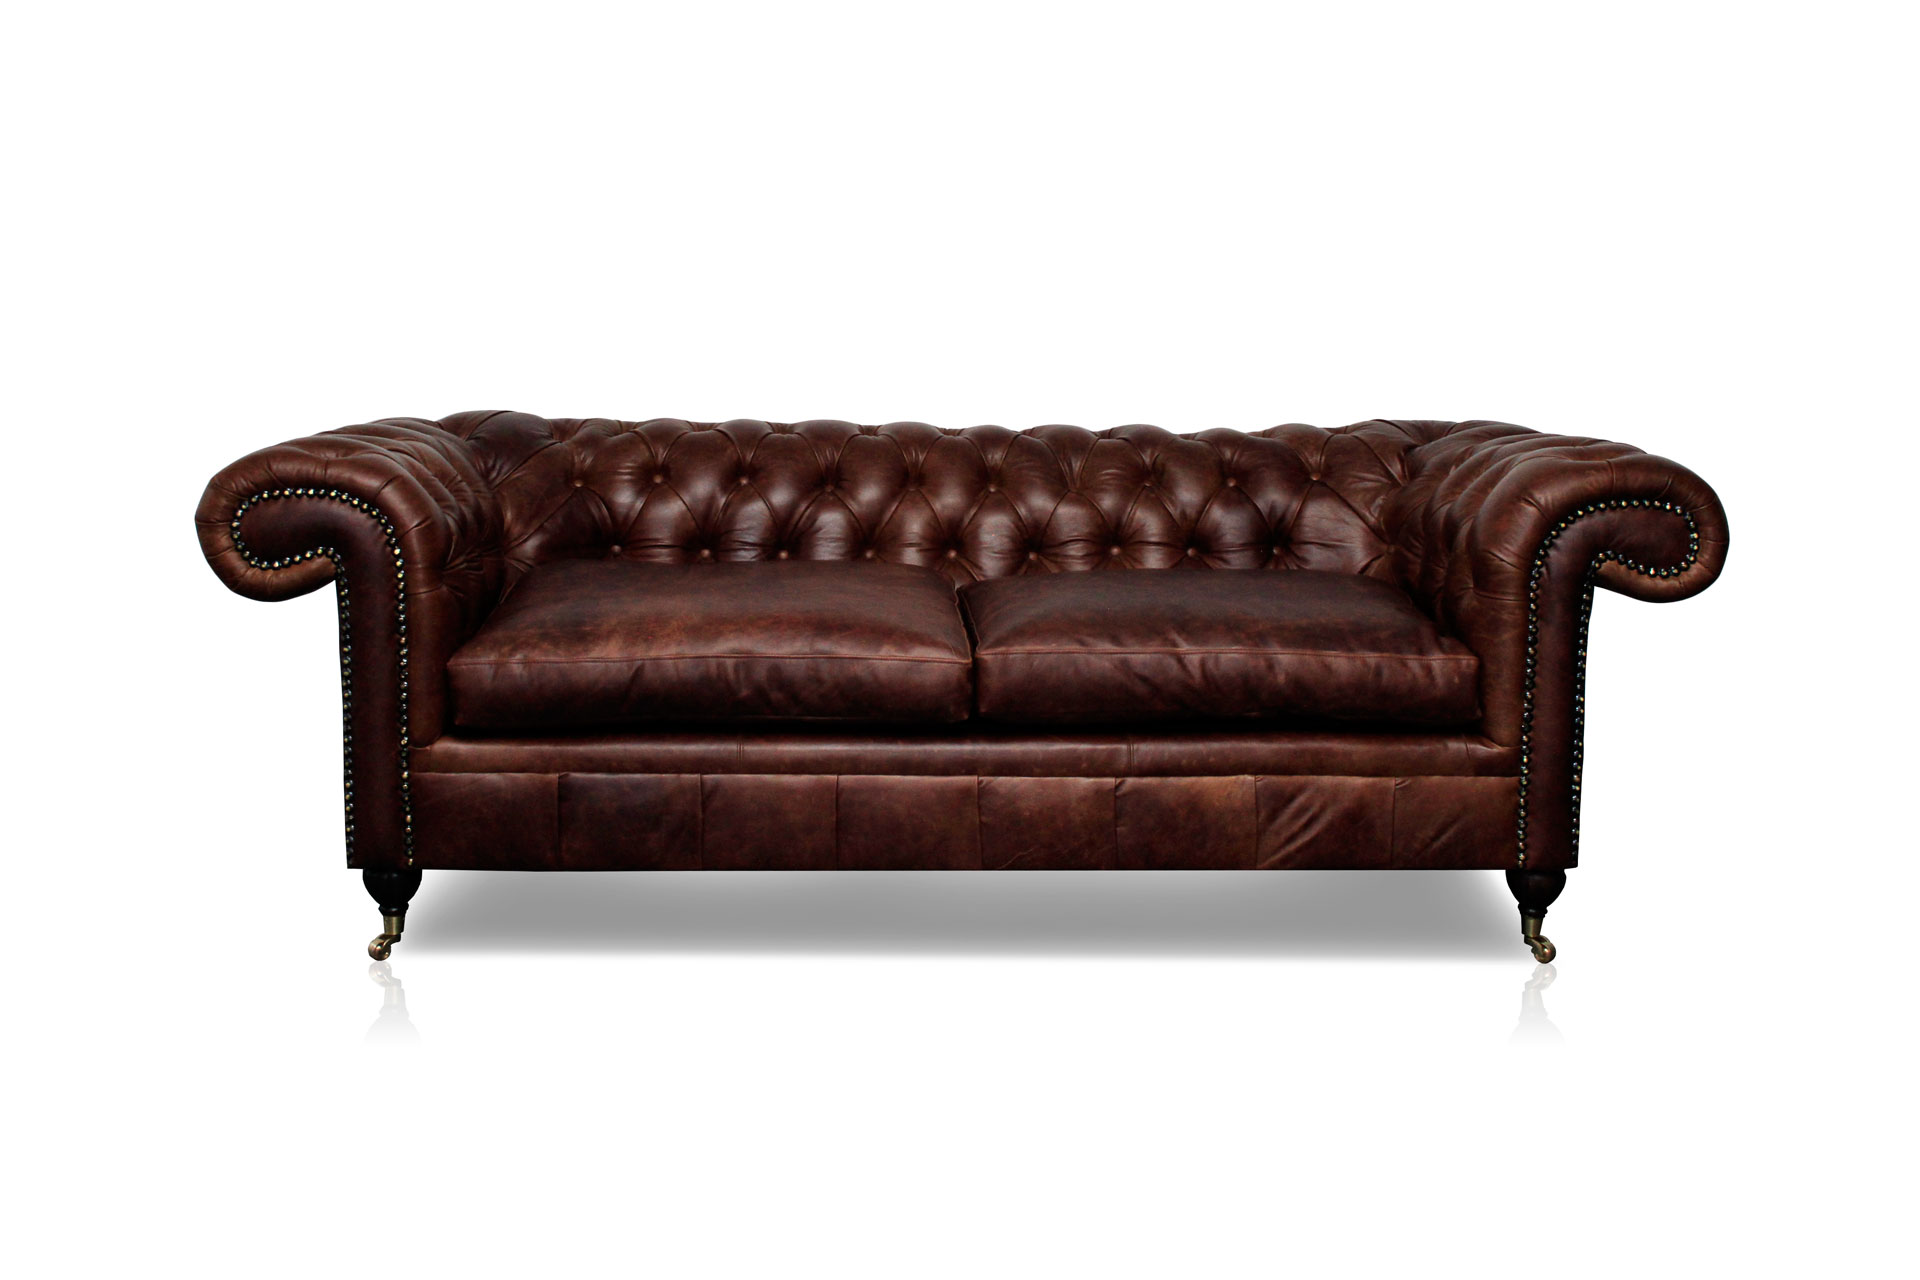 Cresswell Chesterfield